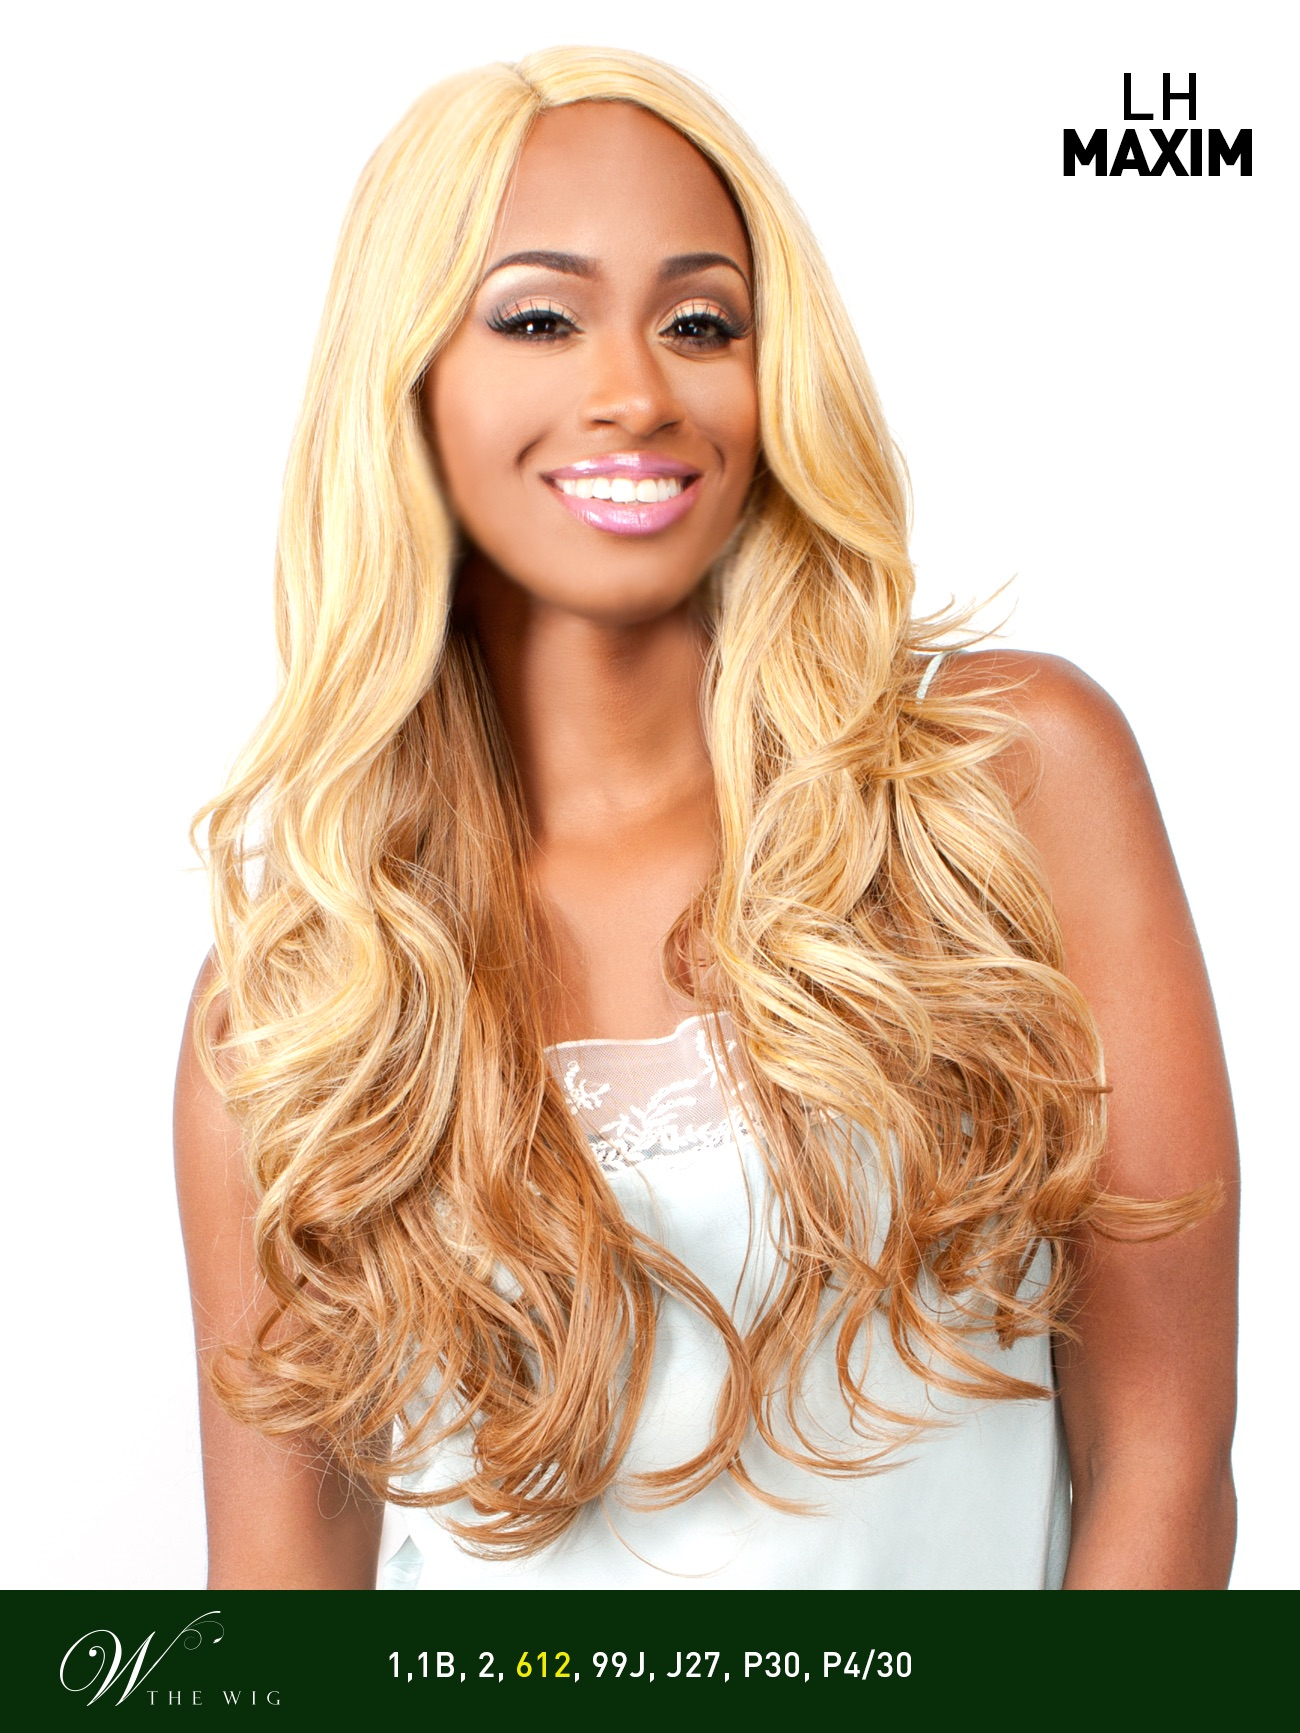 LH MAXIM - THE WIG BRAZILIAN HUMAN HAIR BLEND INVISIBLE PART LACE FRONT WIG